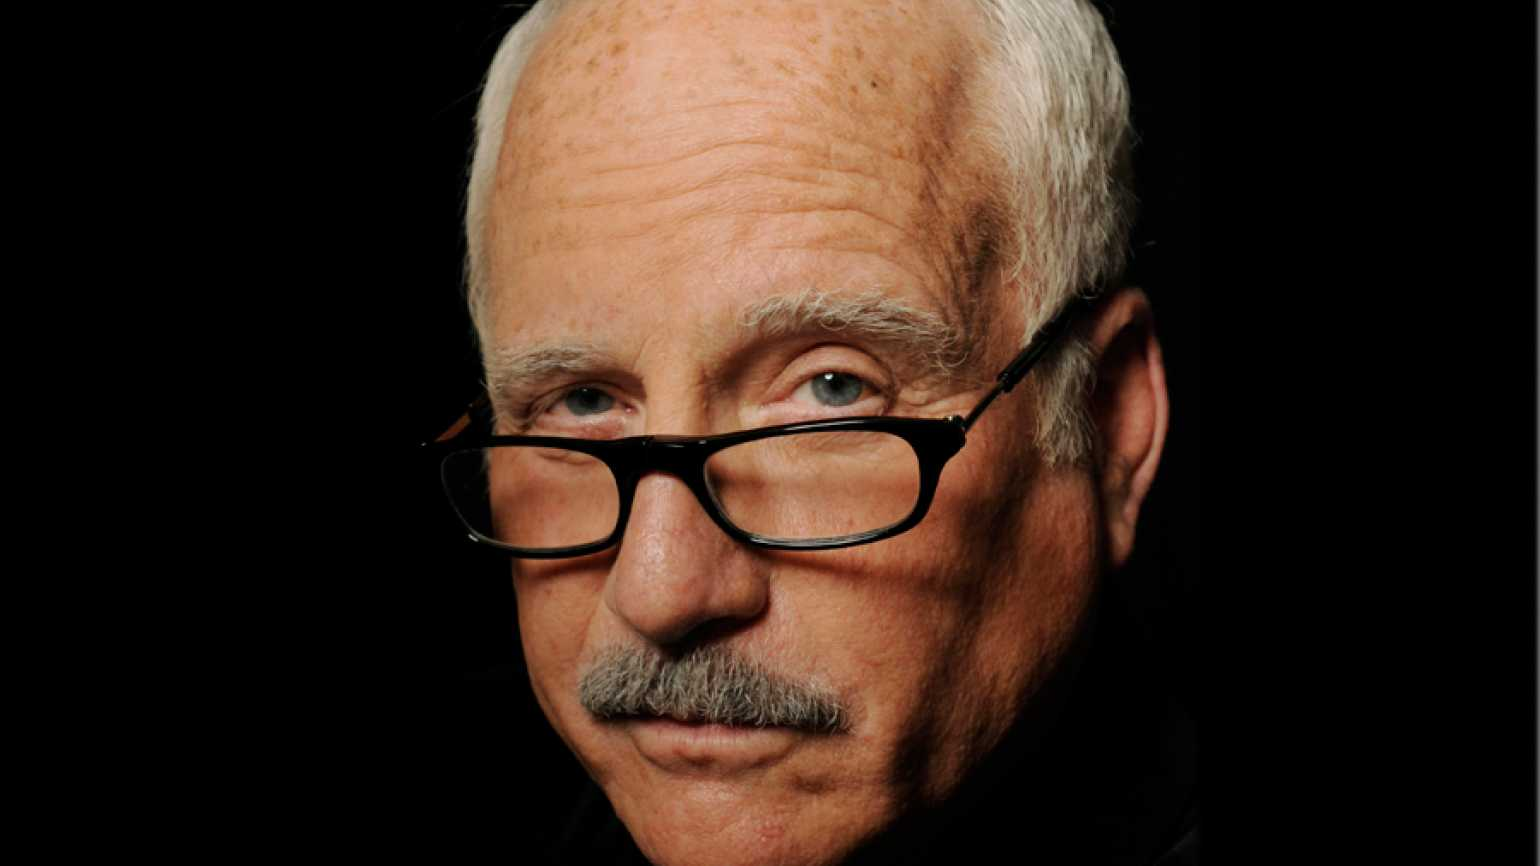 Actor Richard Dreyfuss received a very myserious visitor while in substance abuse recovery.